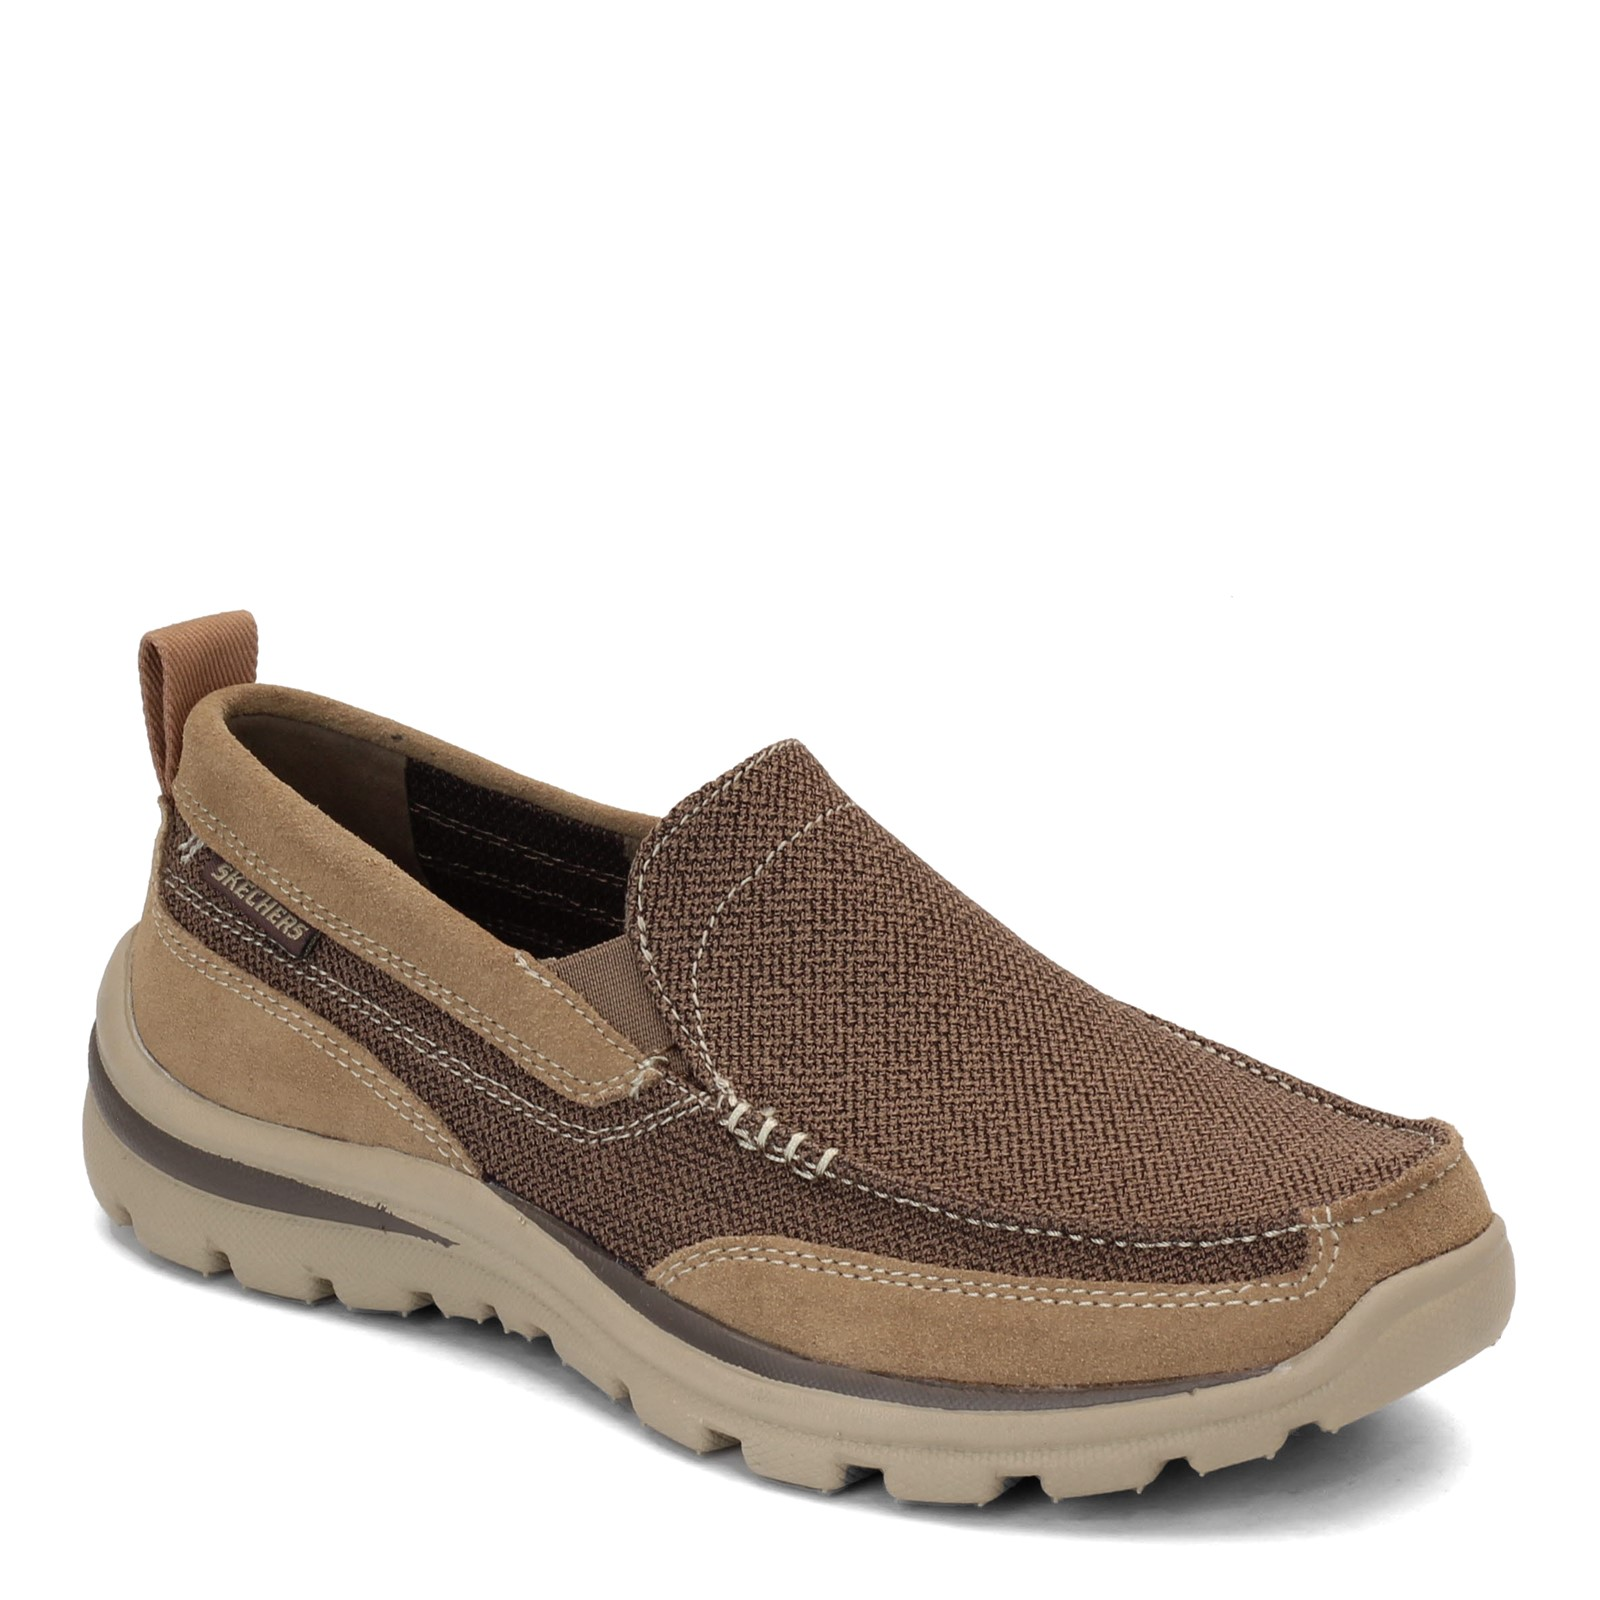 Men's Skechers, Relaxed Fit: Superior - Milford Slip-On